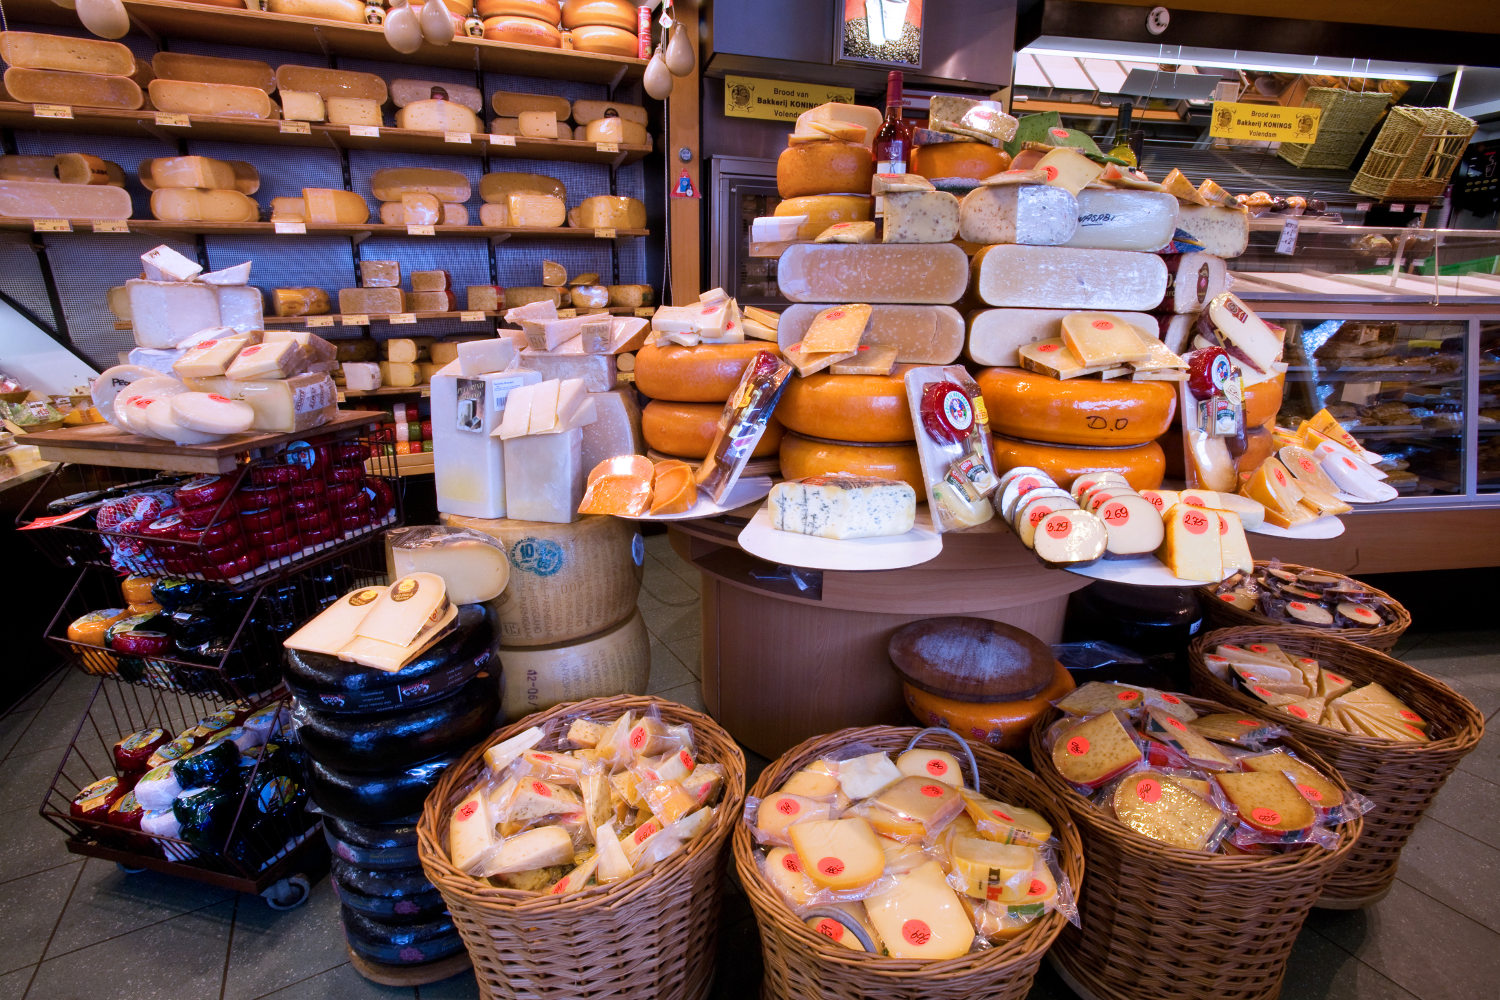 Entire shops dedicated to cheese... genius!